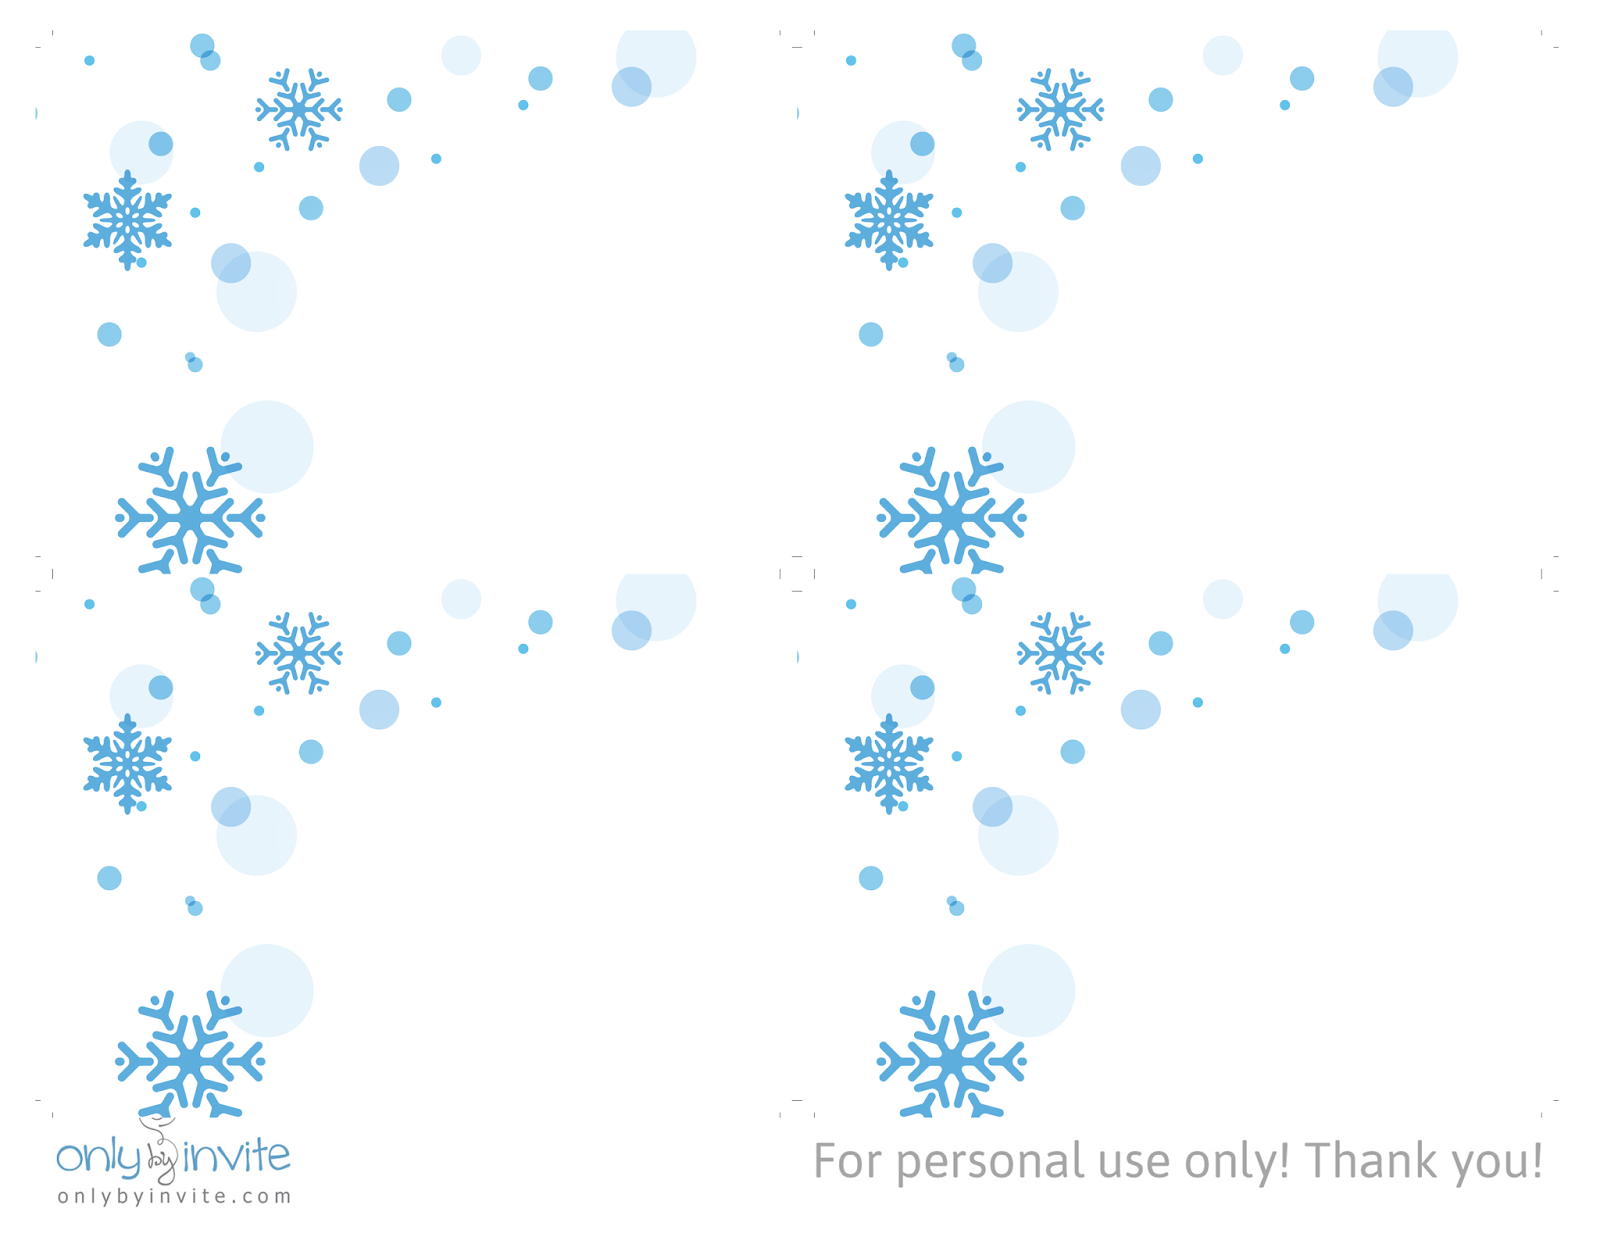 snowflake invitations templates koni polycode co